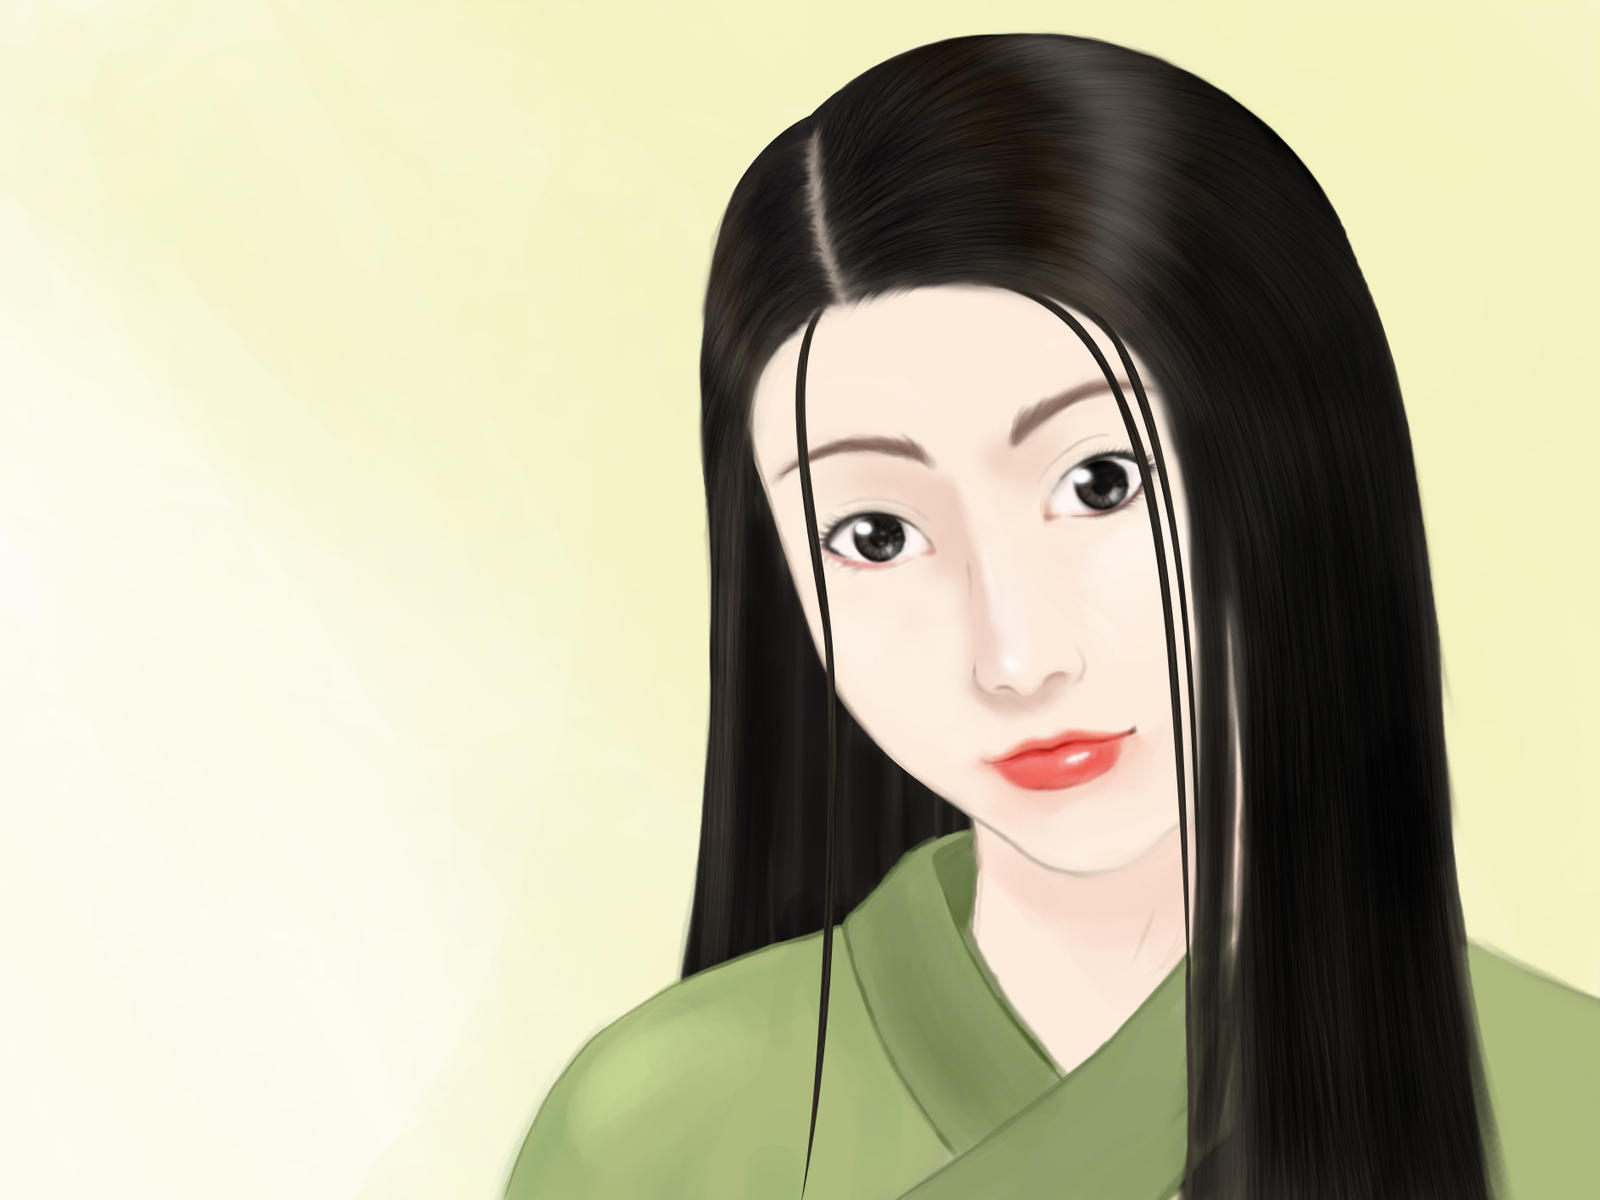 Chinese girl painting test by sandrofujin on deviantart chinese girl painting test by sandrofujin chinese girl painting test by sandrofujin voltagebd Image collections